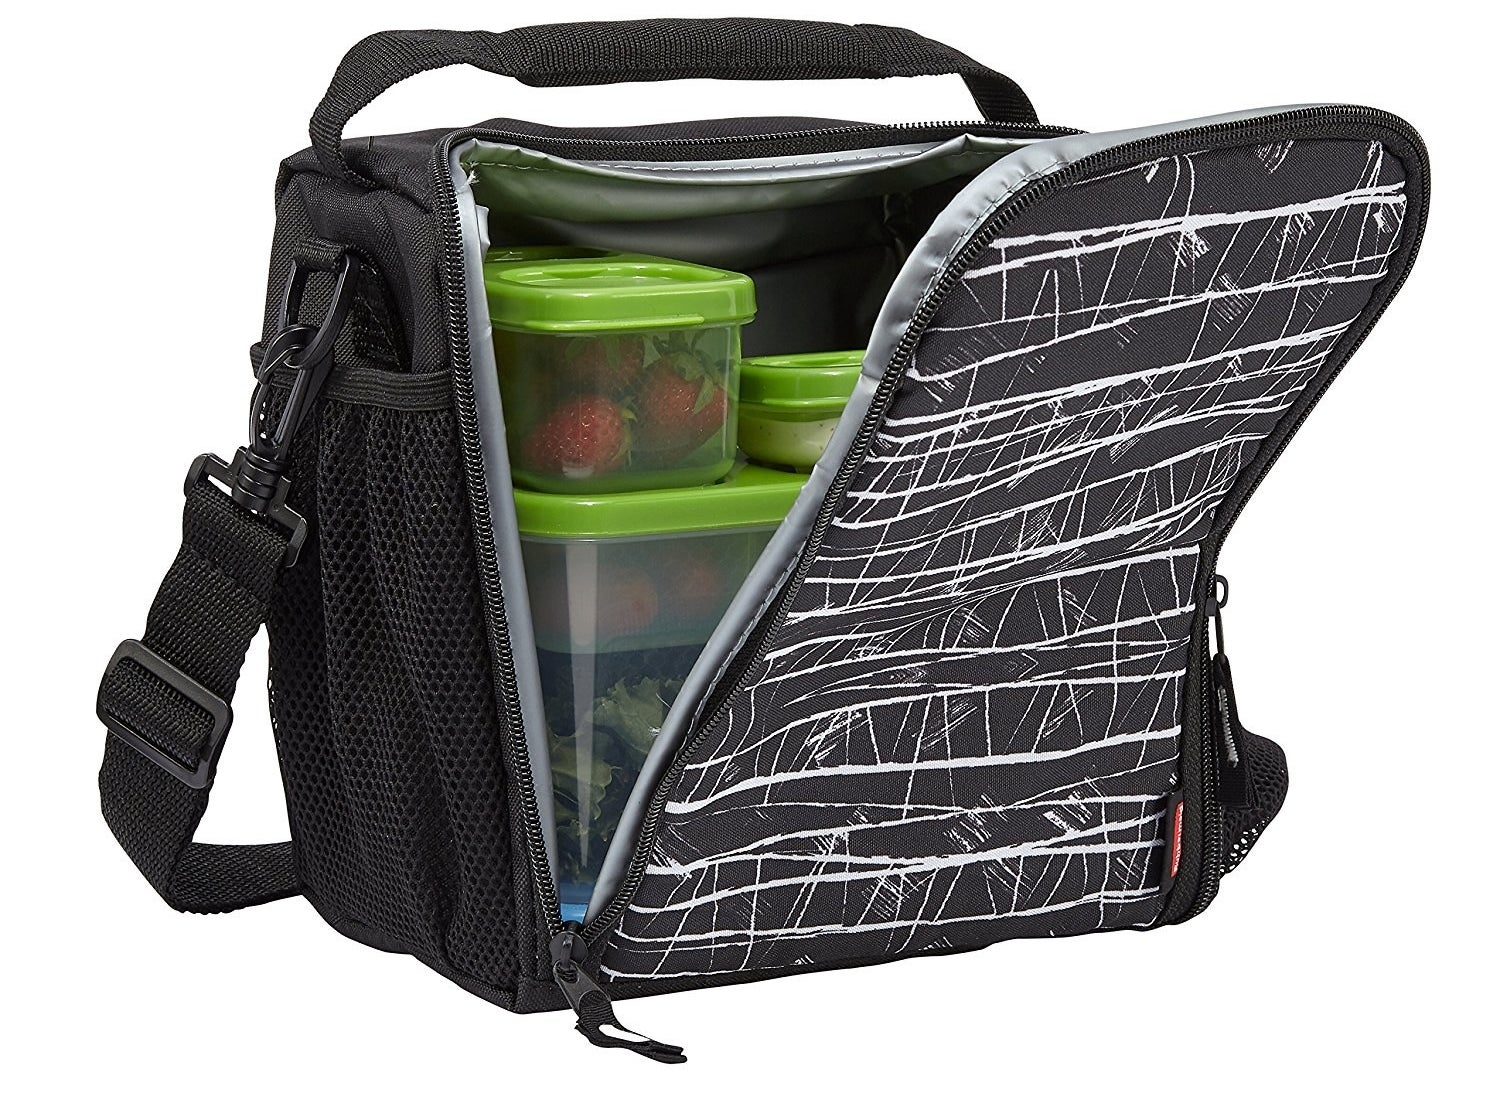 """Promising review: """"Great bag! It's small, but it holds a LOT! Its compact size is great because I want to pack a lunch without lugging around a massive bag. I commute to college and am there from 7 a.m.–2 p.m. and this is perfect to store my lunch. I purchased the salad kit and the sandwich kit and those are amazing! I highly recommend everything about this product. My friends purchased one after falling in love with mine. I wish it came in more colors though! At least this dotted pattern is adult enough for me to not look ridiculous in college"""" —TugarPrice: $10.42 (available in two sizes and three colors)"""